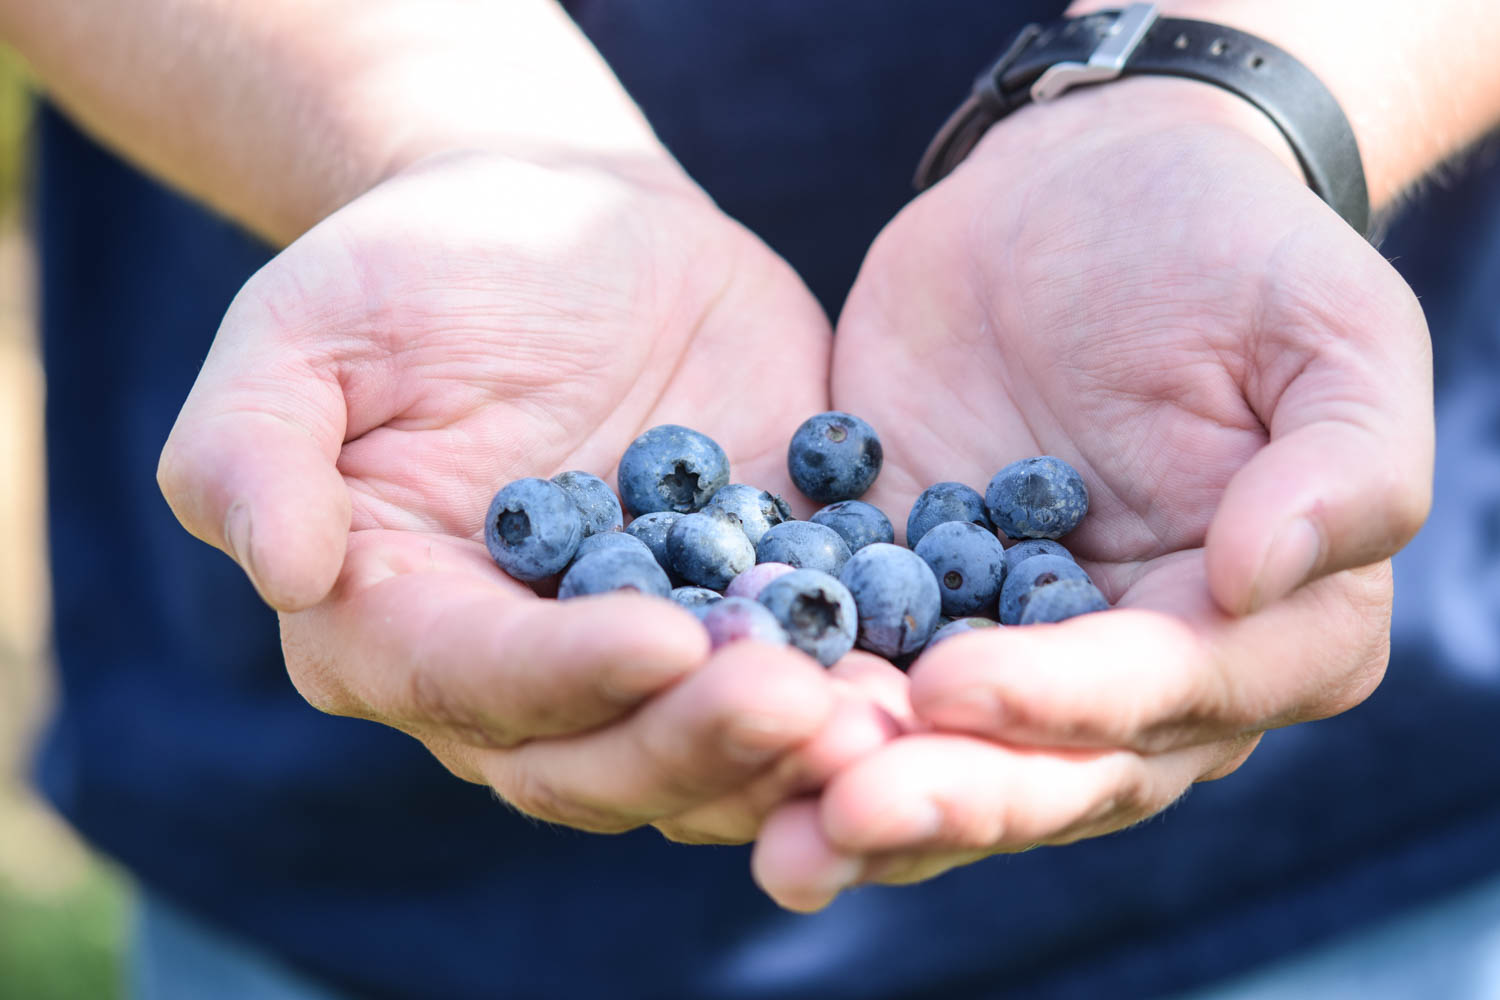 5 things I learned from joining a CSA this summer, blueberries, you pick